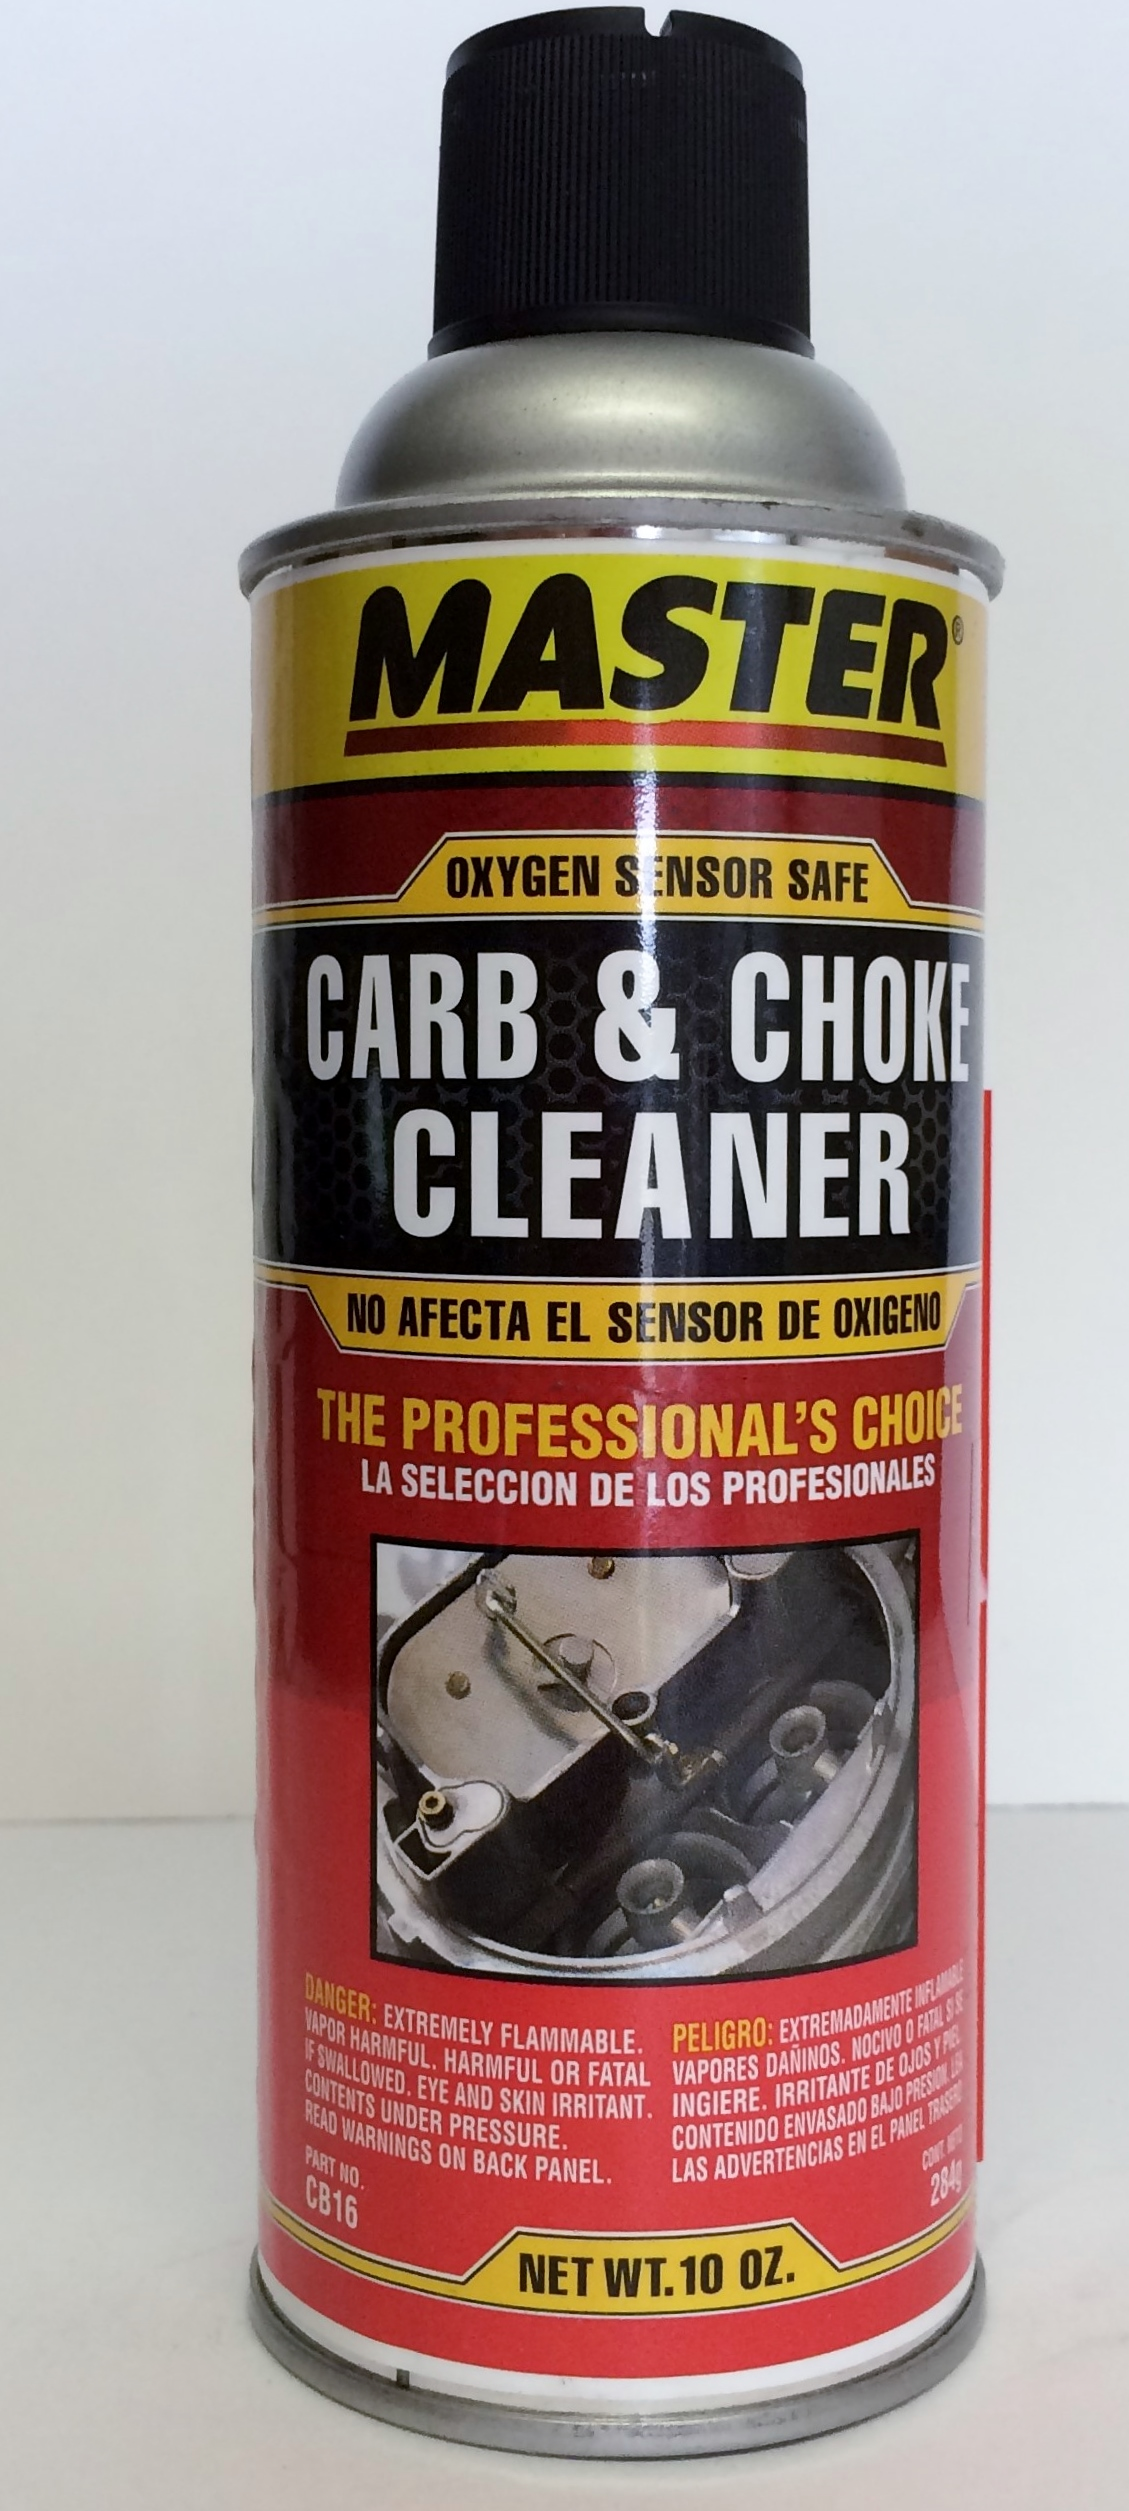 Carb cleaner